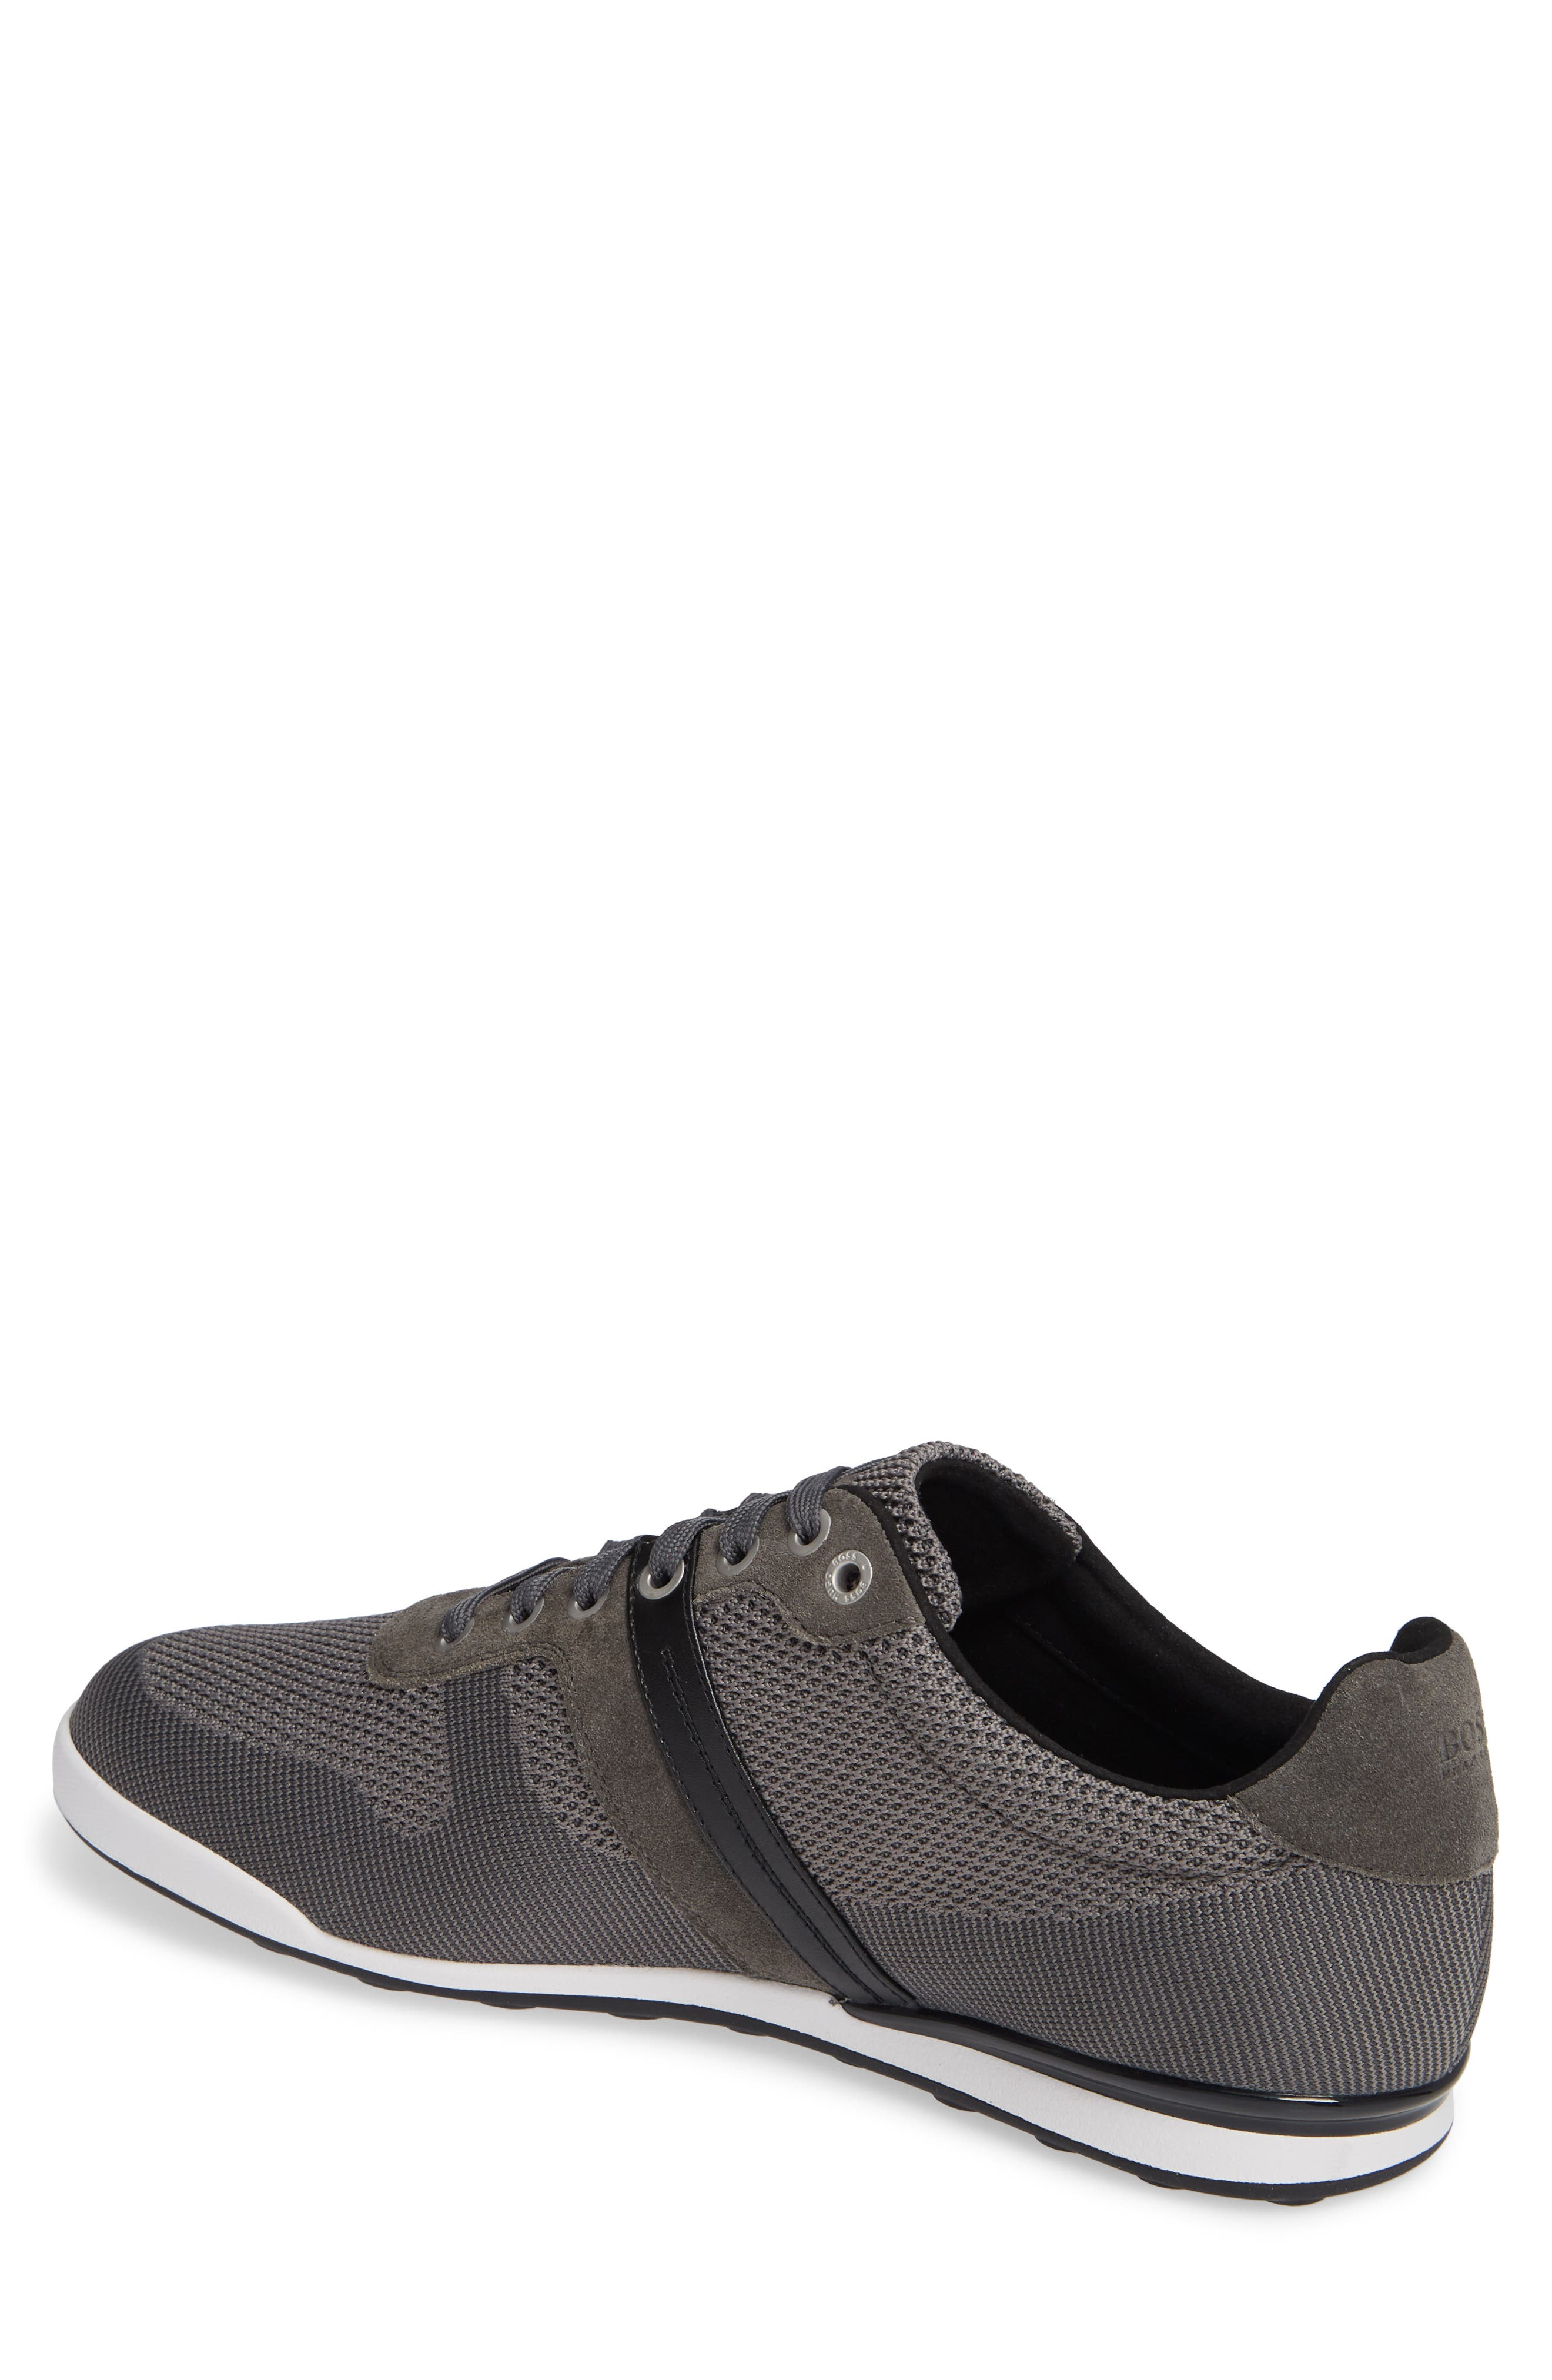 Hugo Boss Arkansas Lace-Up Sneaker,                             Alternate thumbnail 2, color,                             021